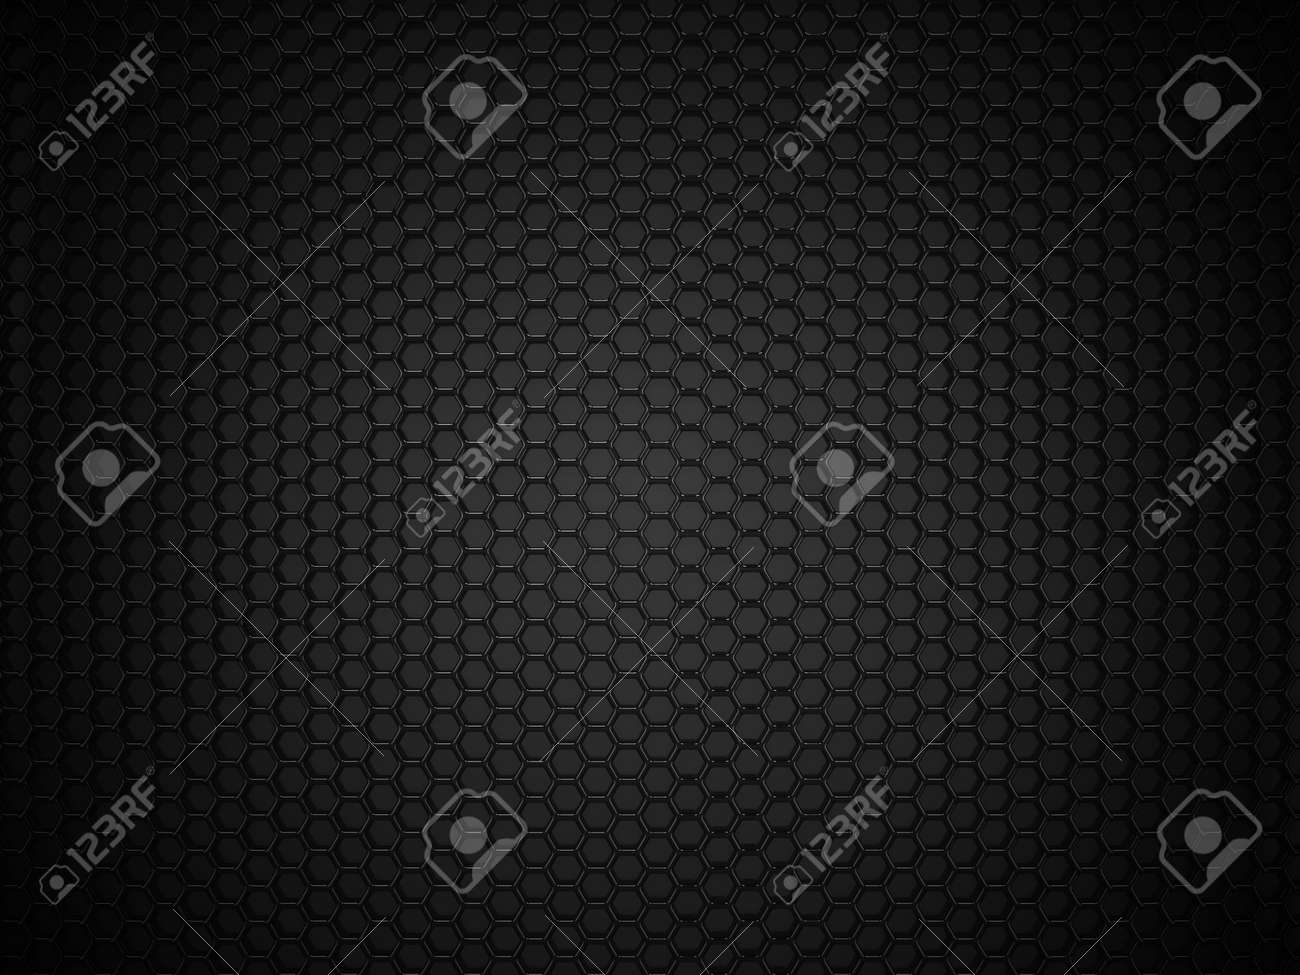 Abstract black hexagonal carbon background - 45148174